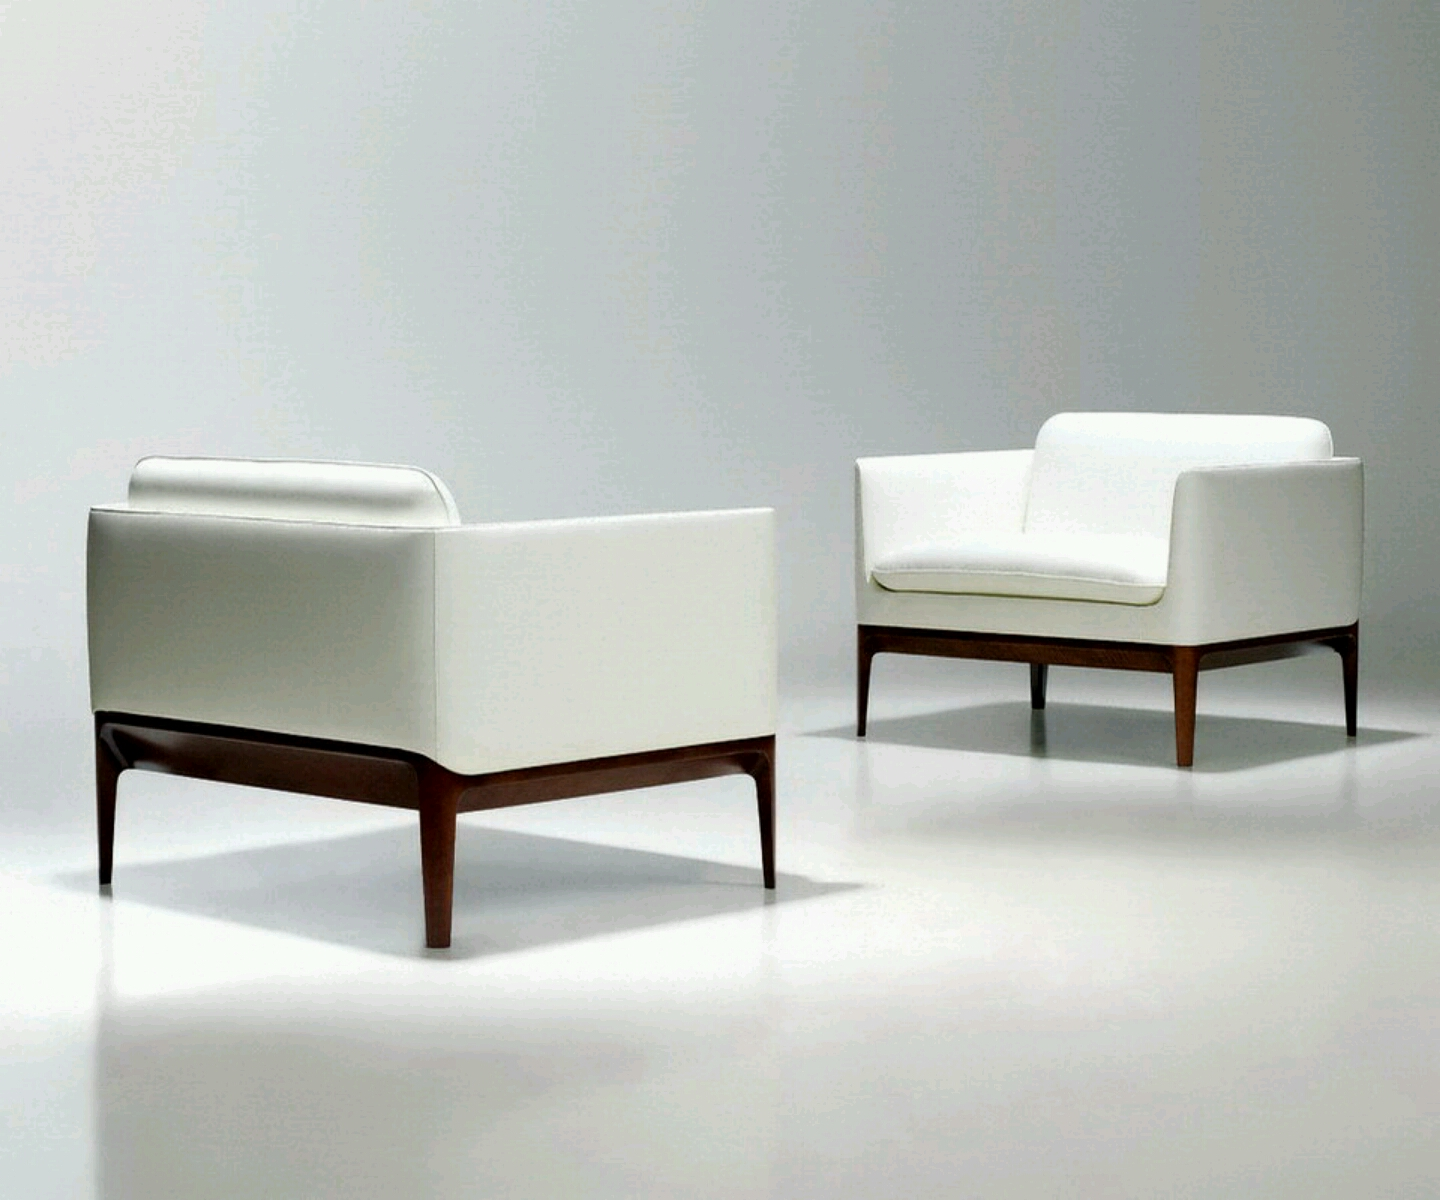 Sofa Sets Modern Designs Leather Sofas On Gumtree Manchester Beautiful White An Interior Design